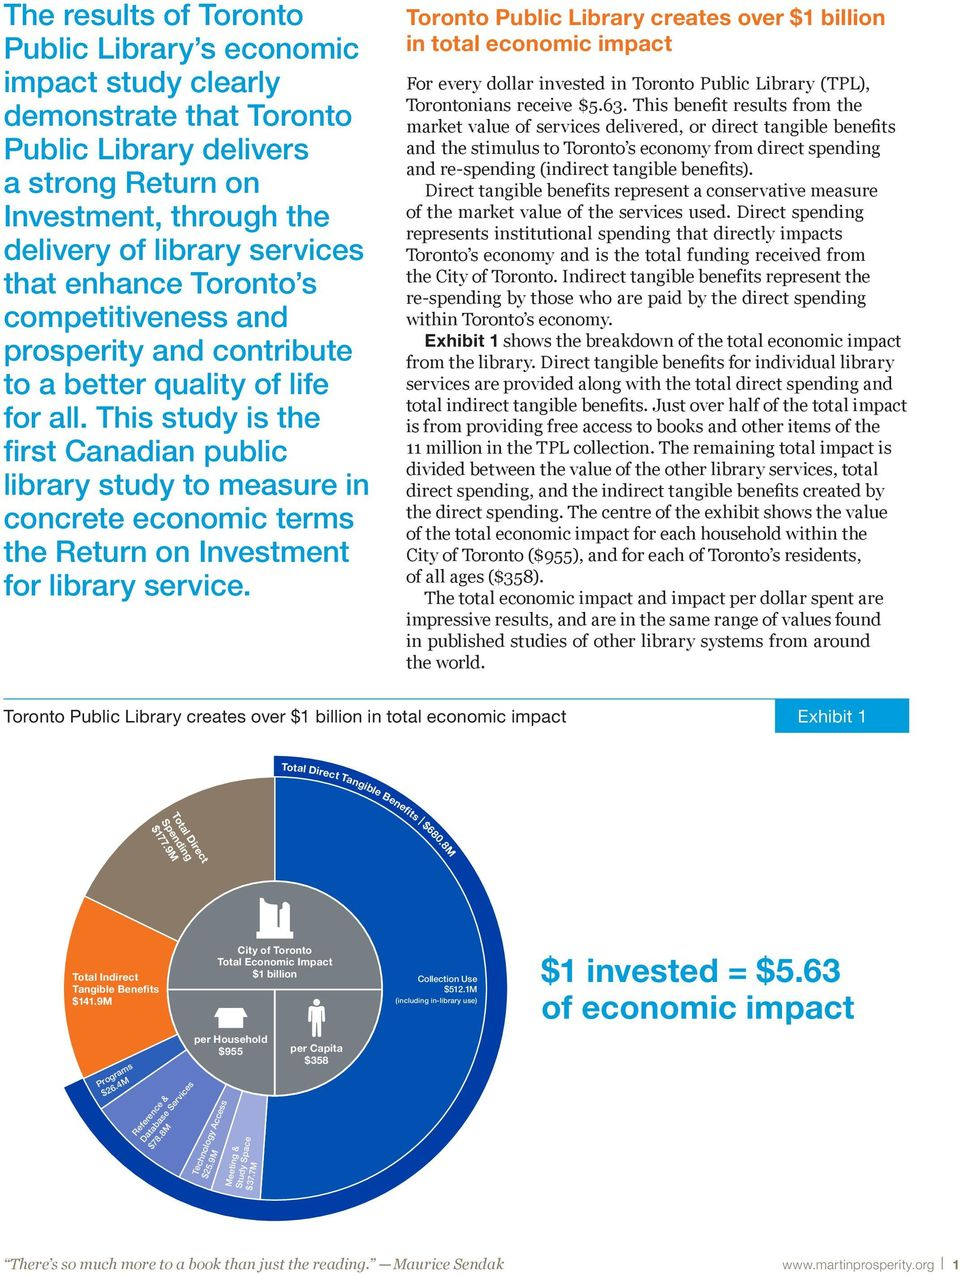 This study is the first Canadian public library study to measure in concrete economic terms the Return on Investment for library service.